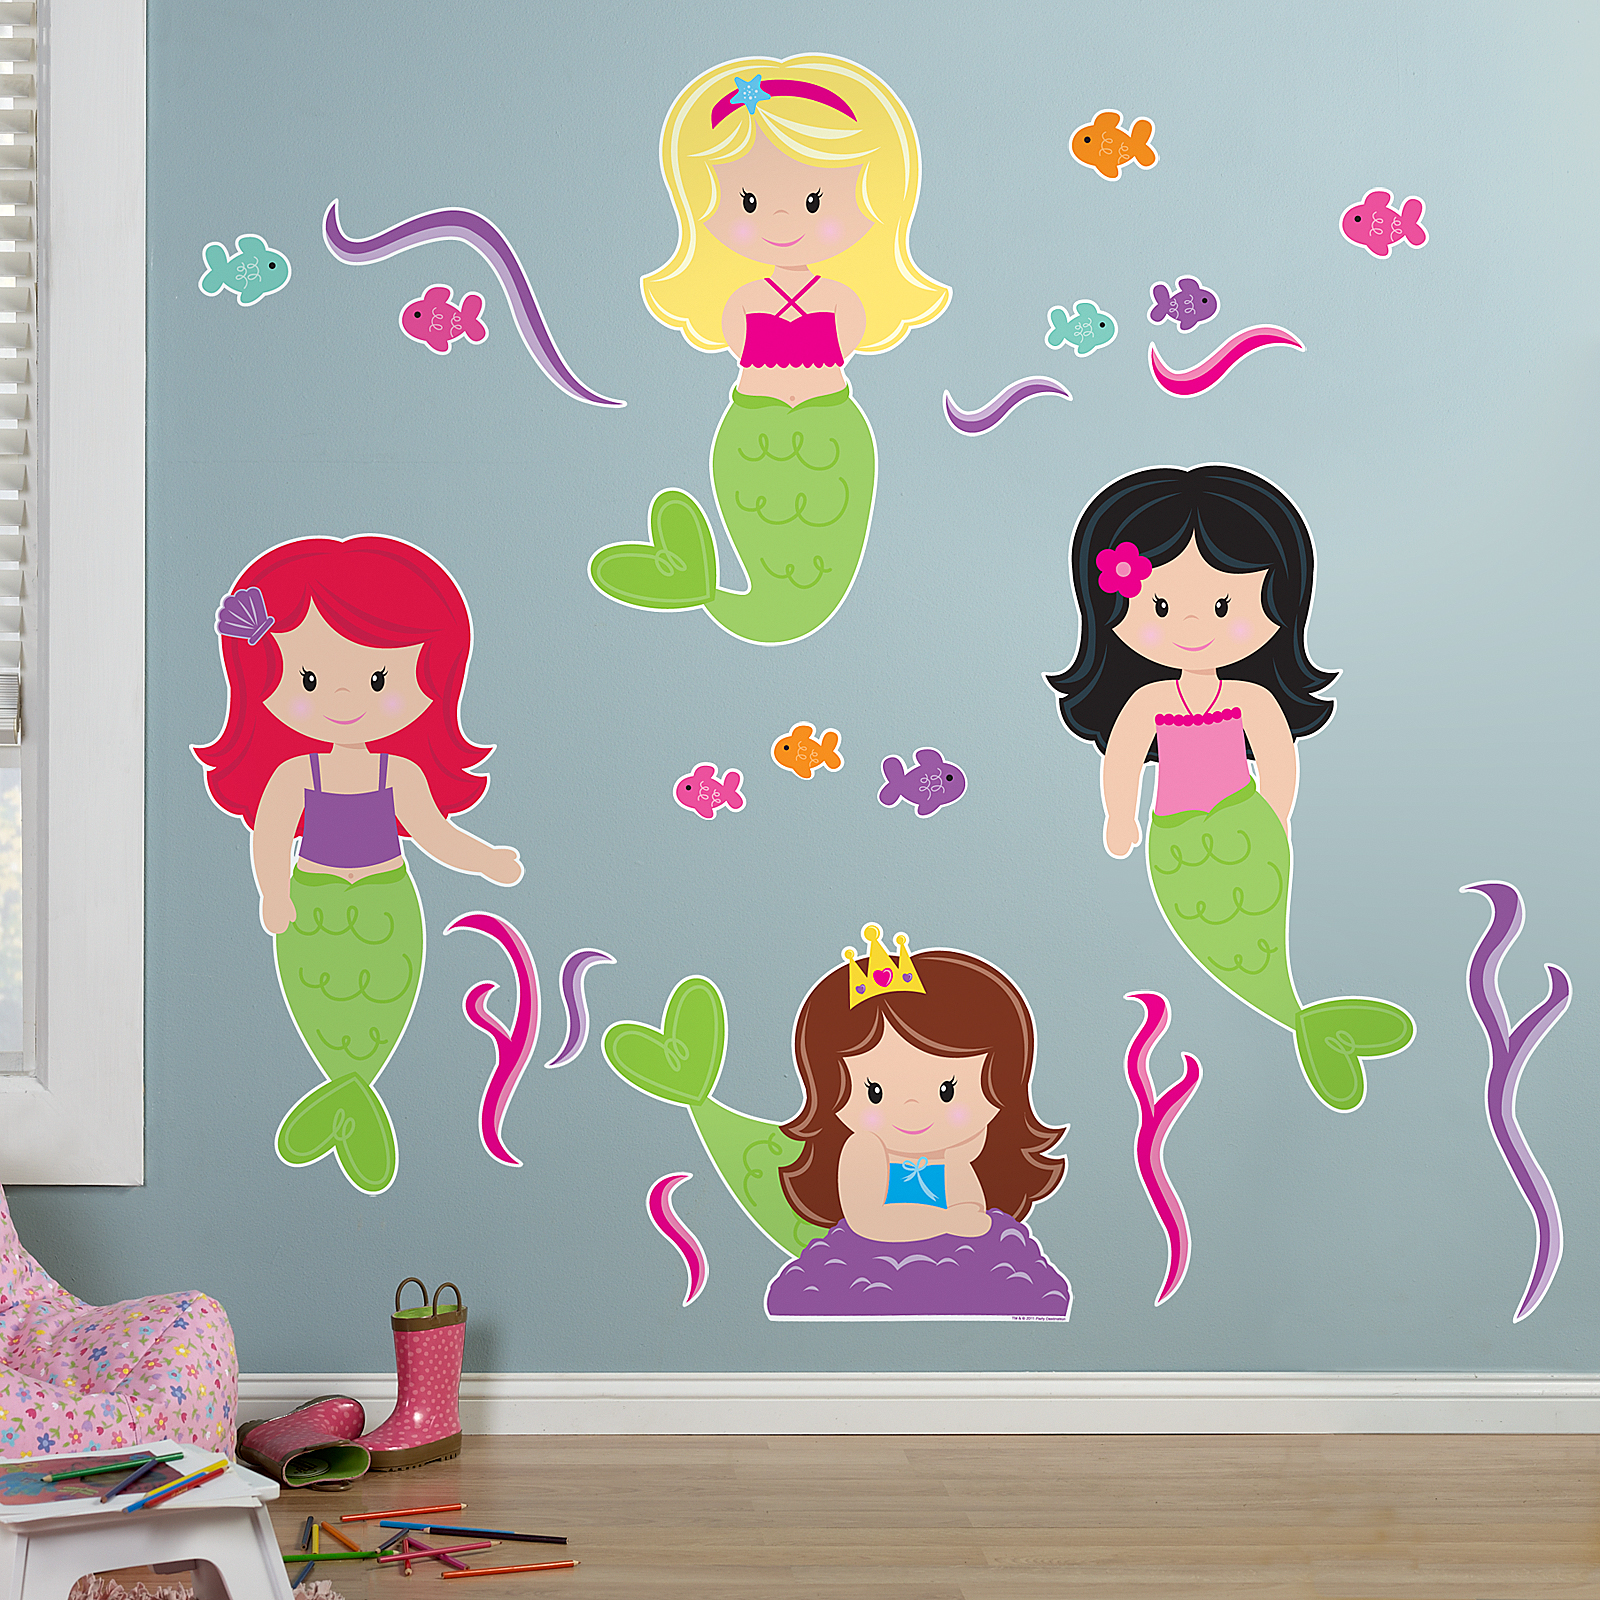 Mermaids giant wall decals birthdayexpress amipublicfo Images